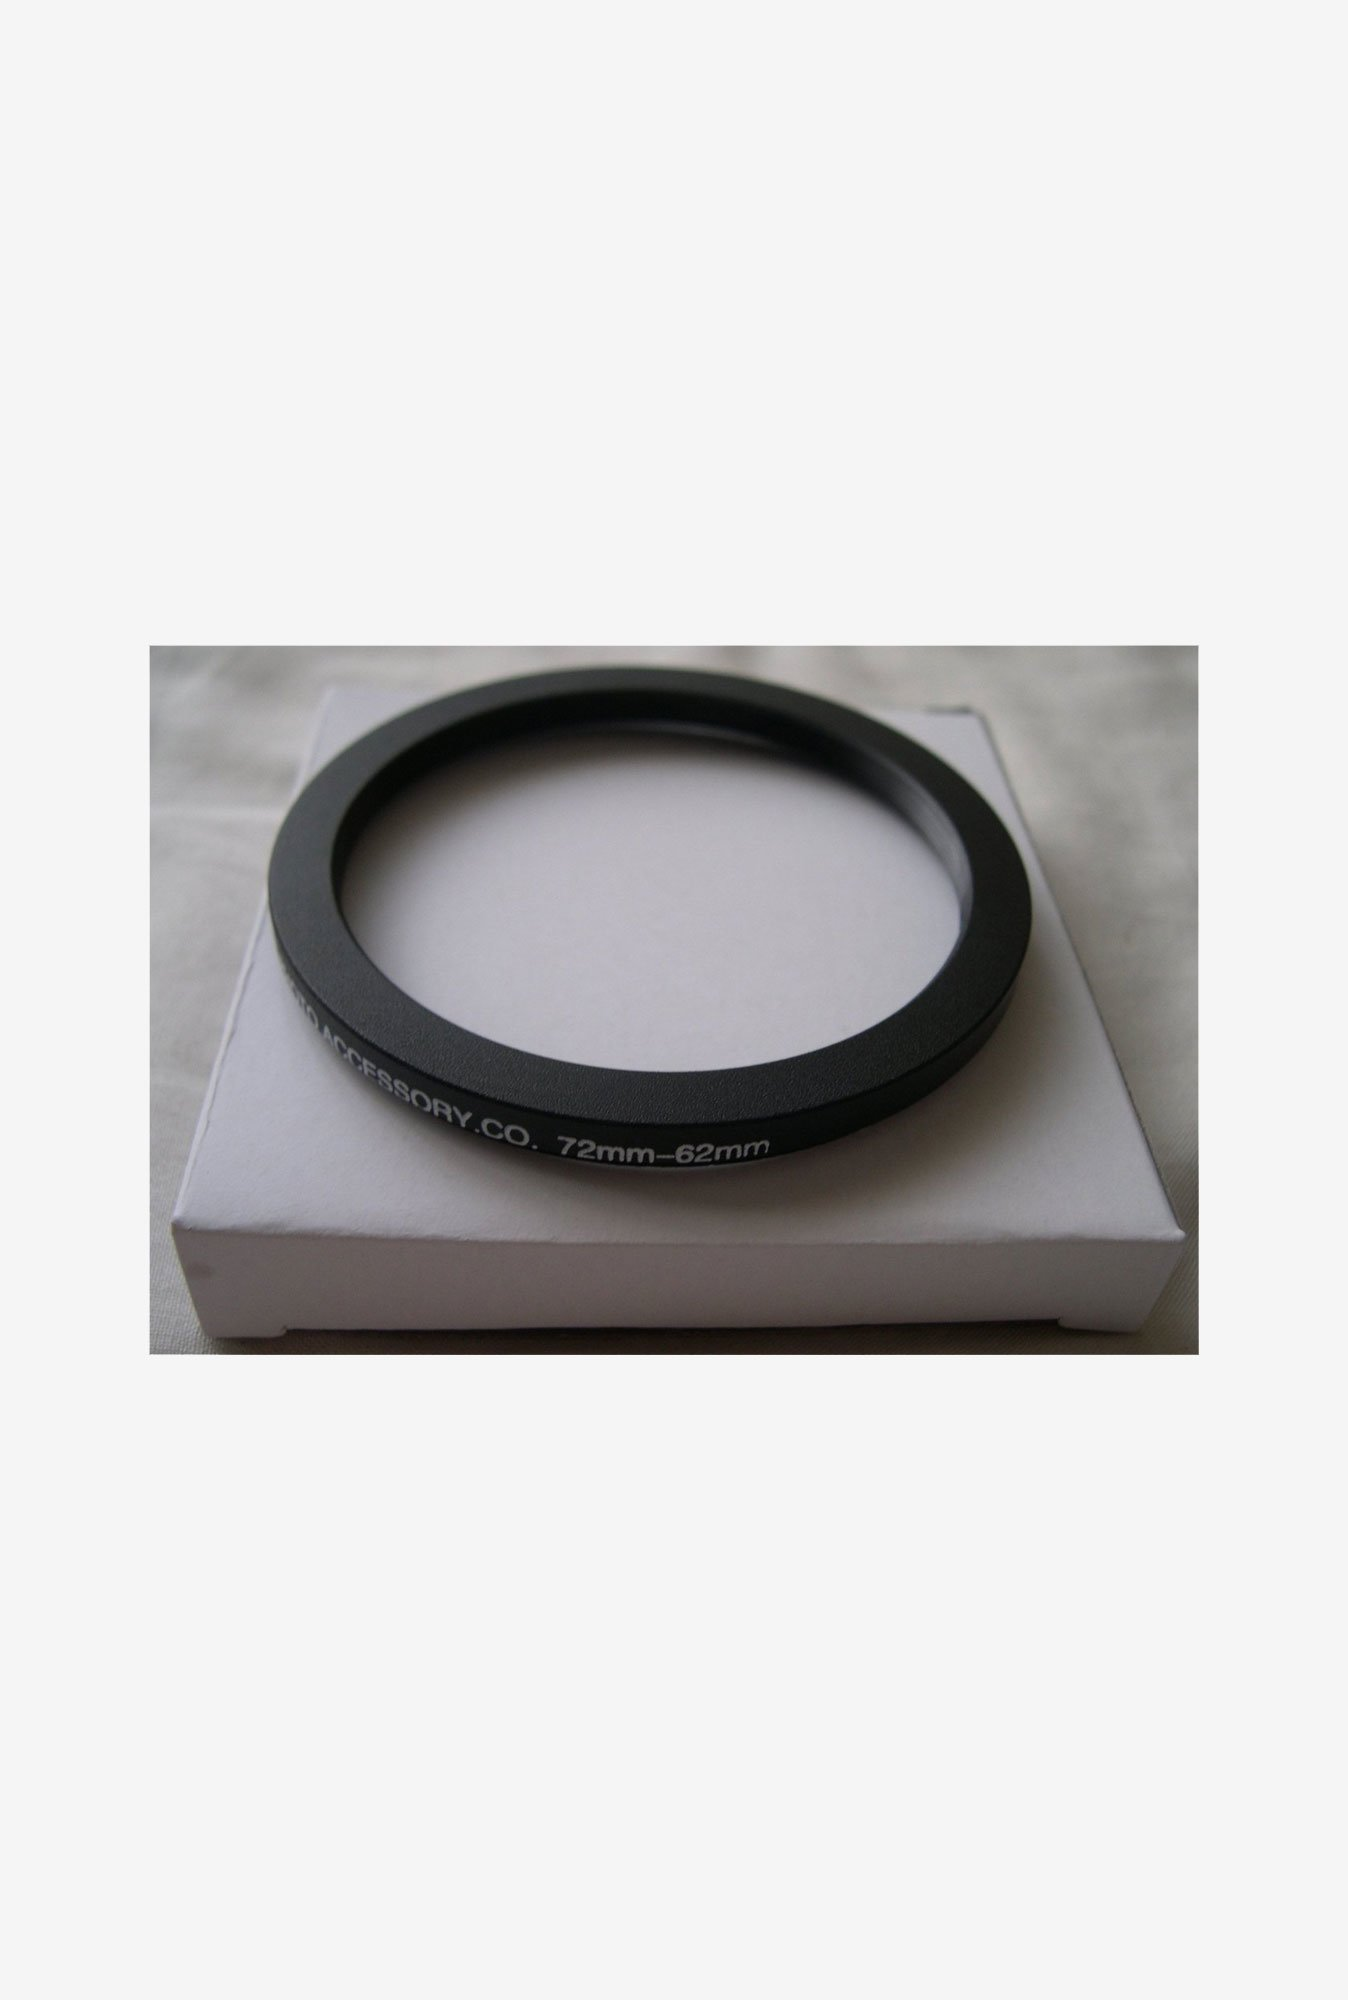 HeavyStar Dedicated Step-Down Ring 72mm to 62mm (Black)